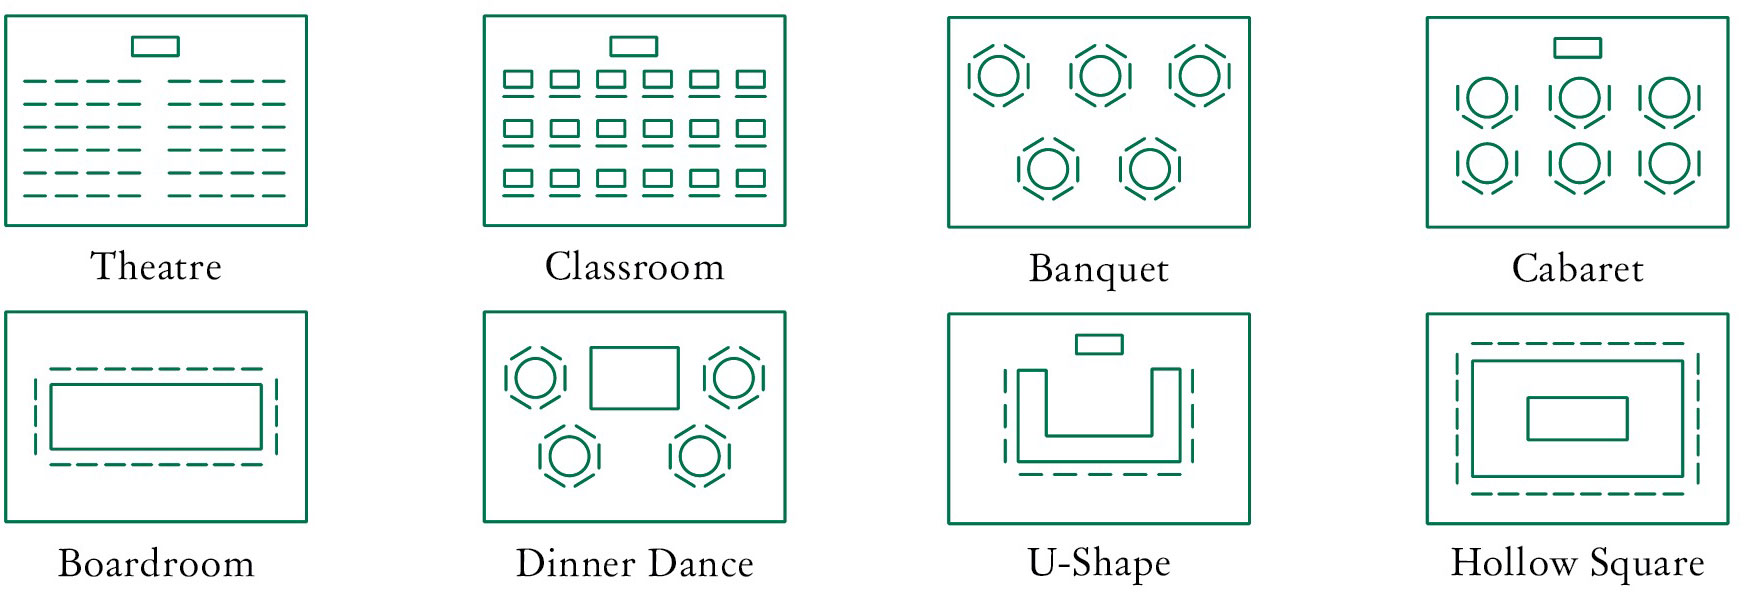 conference layouts